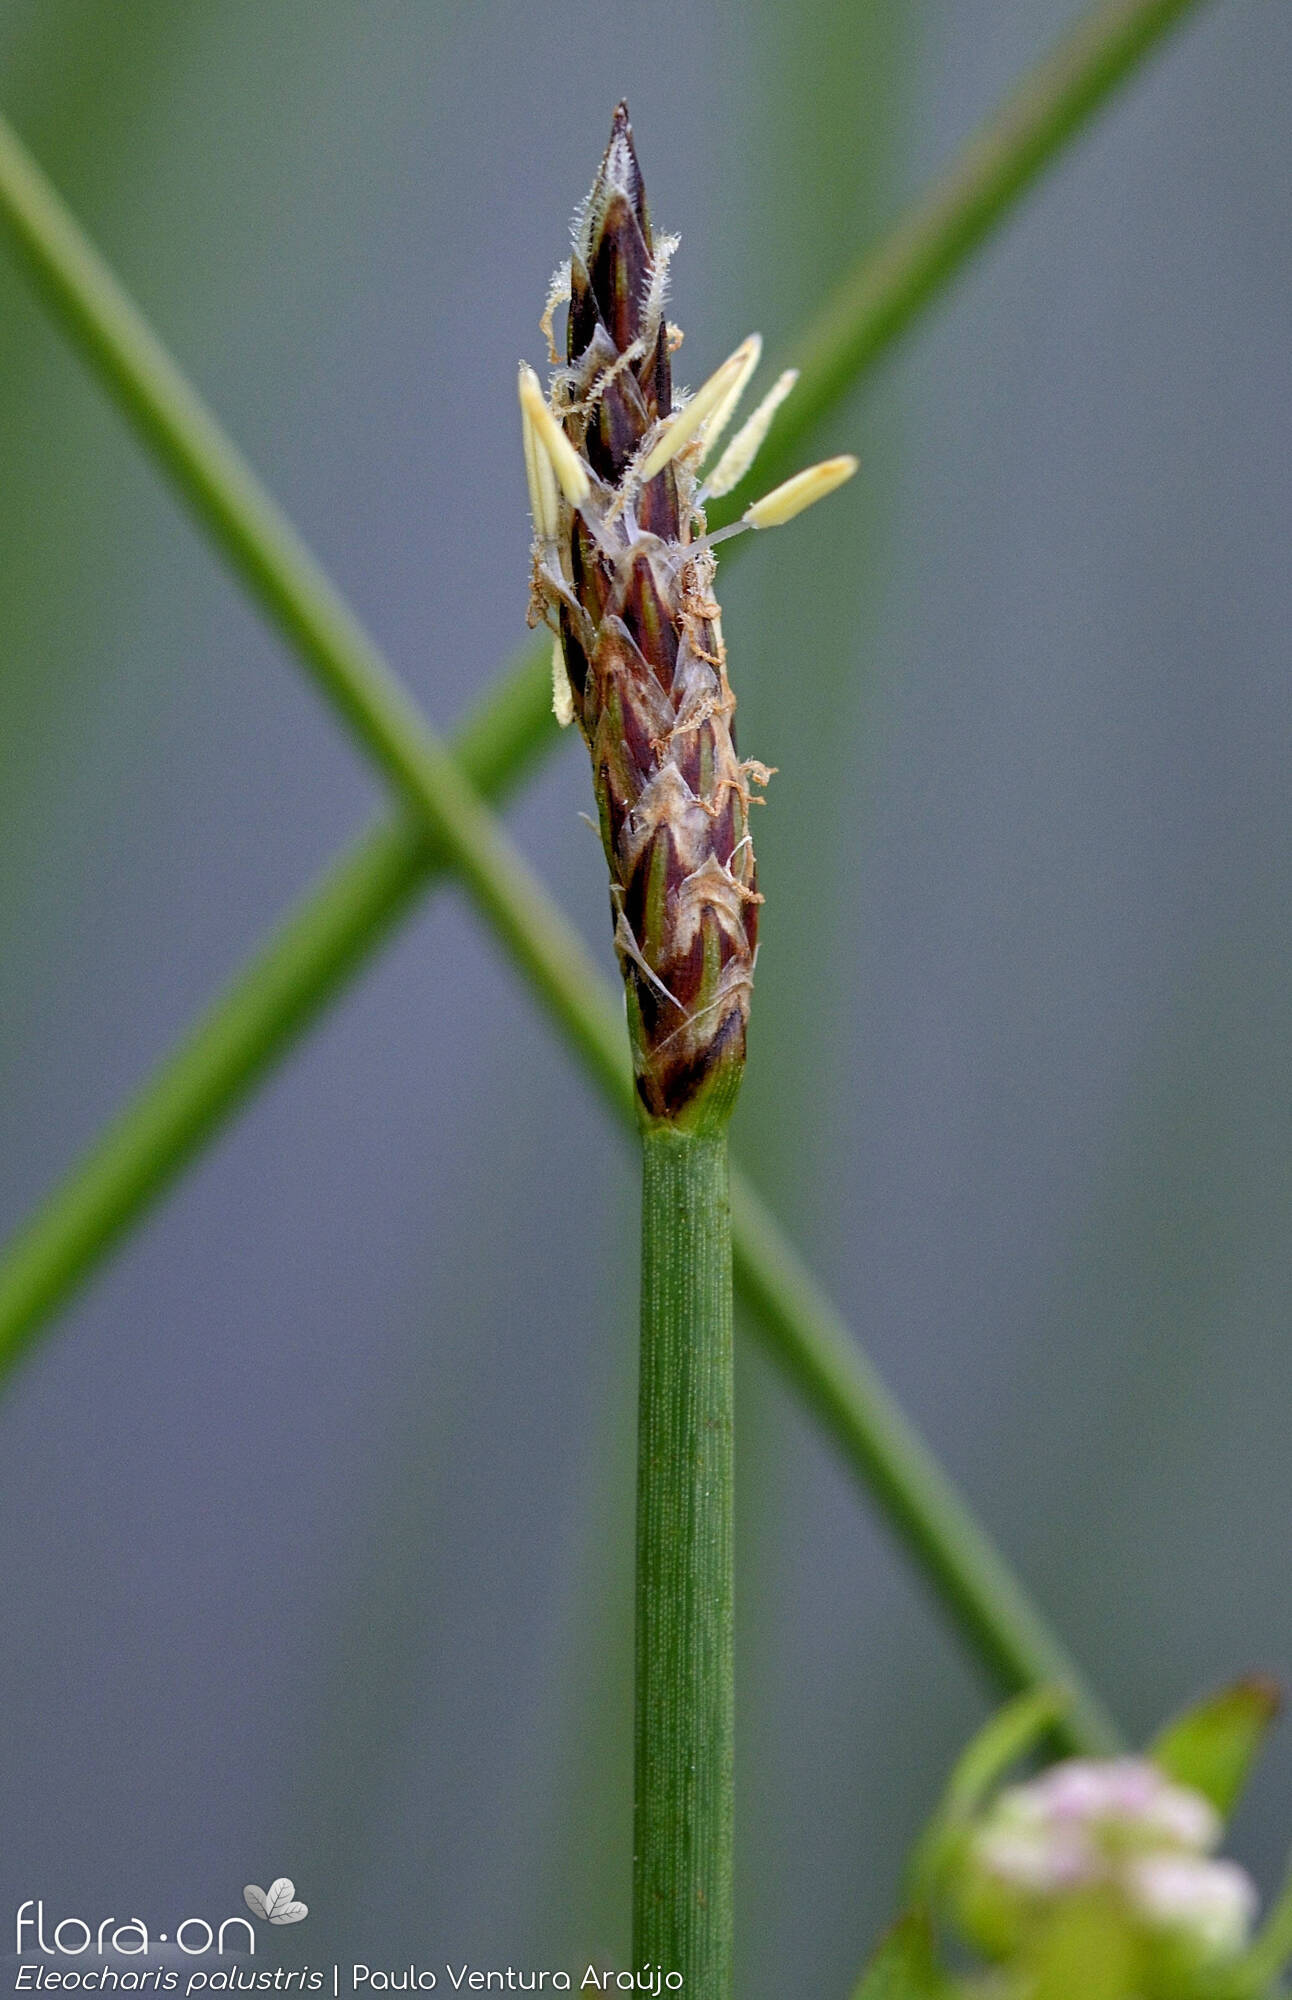 Eleocharis palustris - Flor (close-up) | Paulo Ventura Araújo; CC BY-NC 4.0